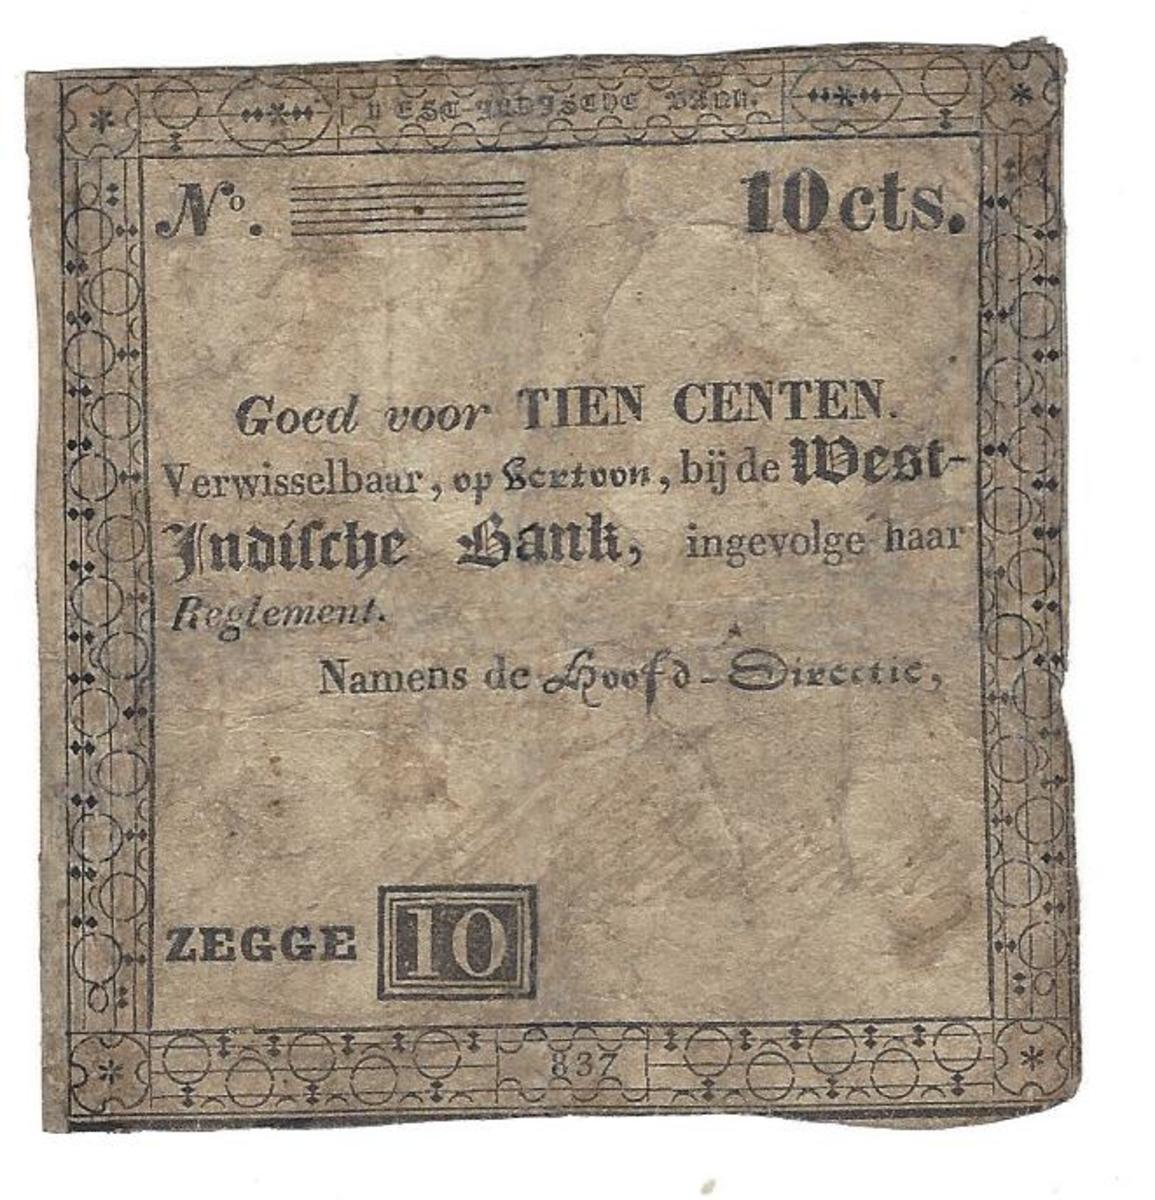 The 10-stiver is the smallest value note of these early PWIB series. This issue is dated 1837. It represents a limited attempt to provide lower denominations for circulation. Size: 75 x 75mm.